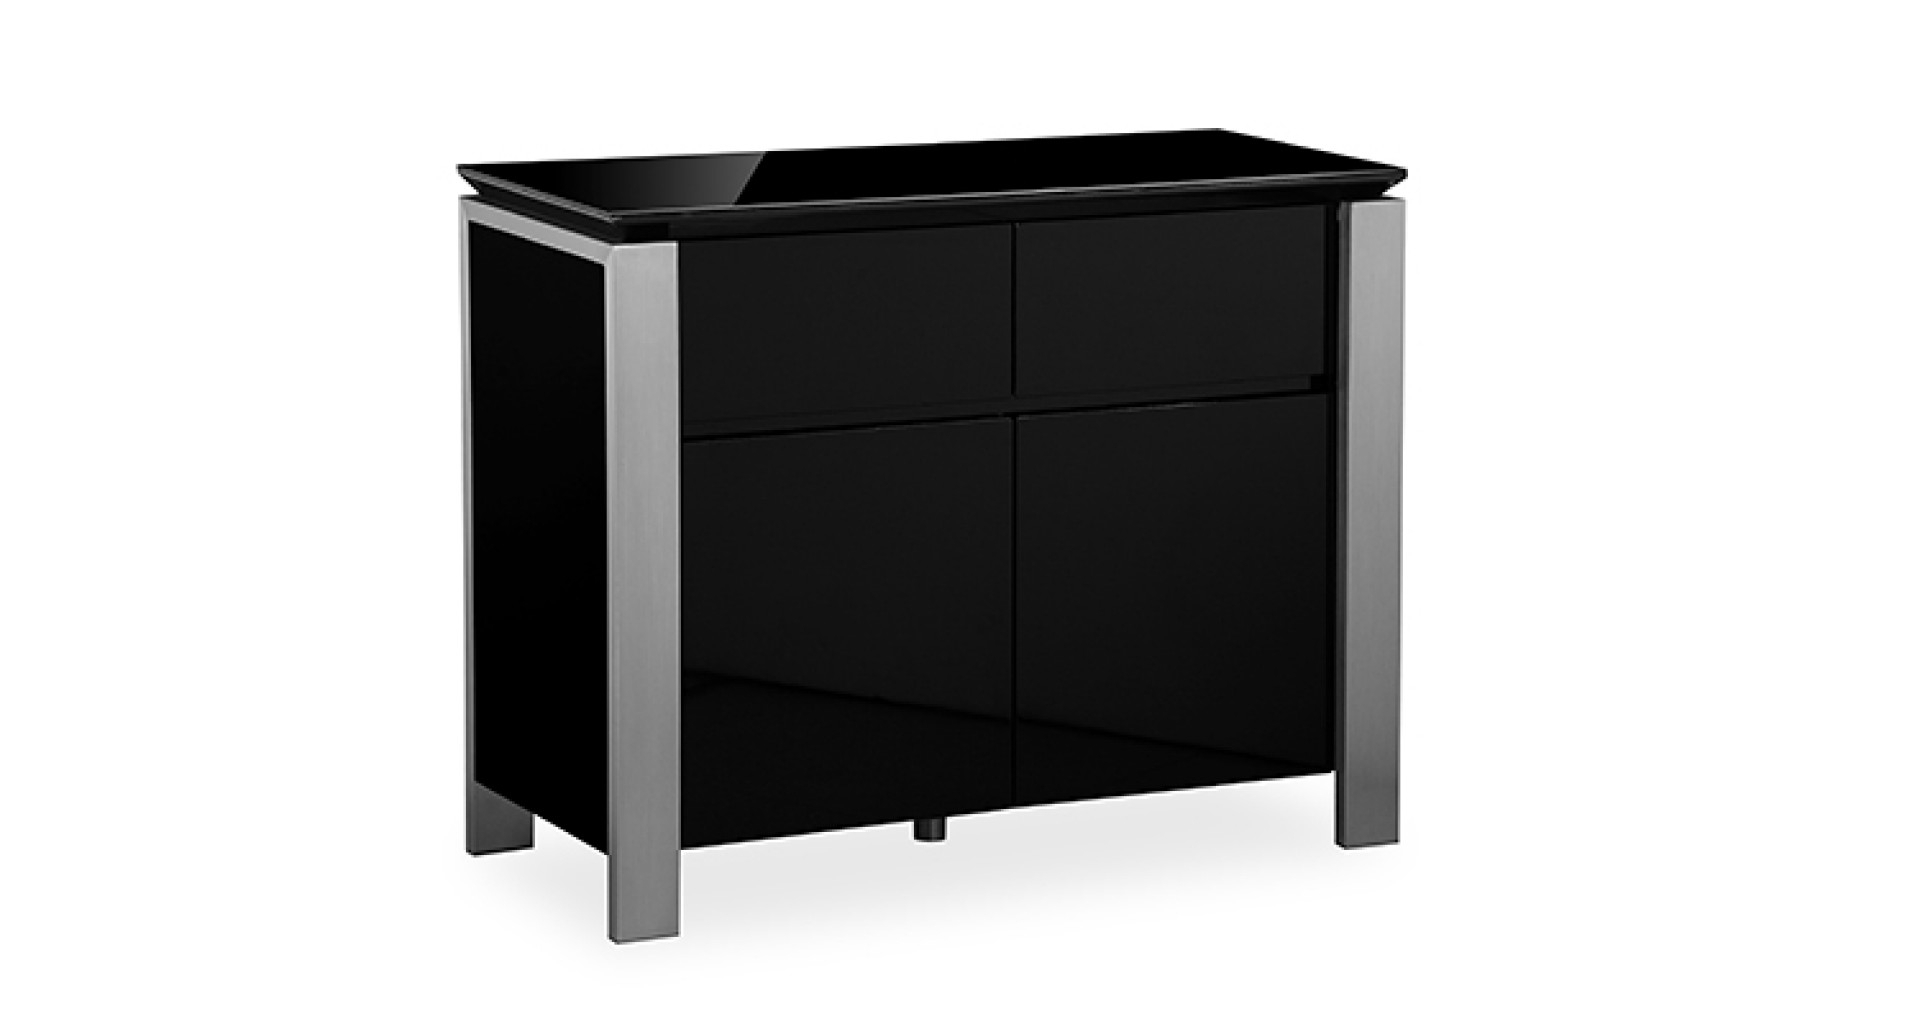 Inspiration about Tribeca – Small Sideboard – Black High Gloss Pertaining To Most Recently Released Tribeca Sideboards (#13 of 20)